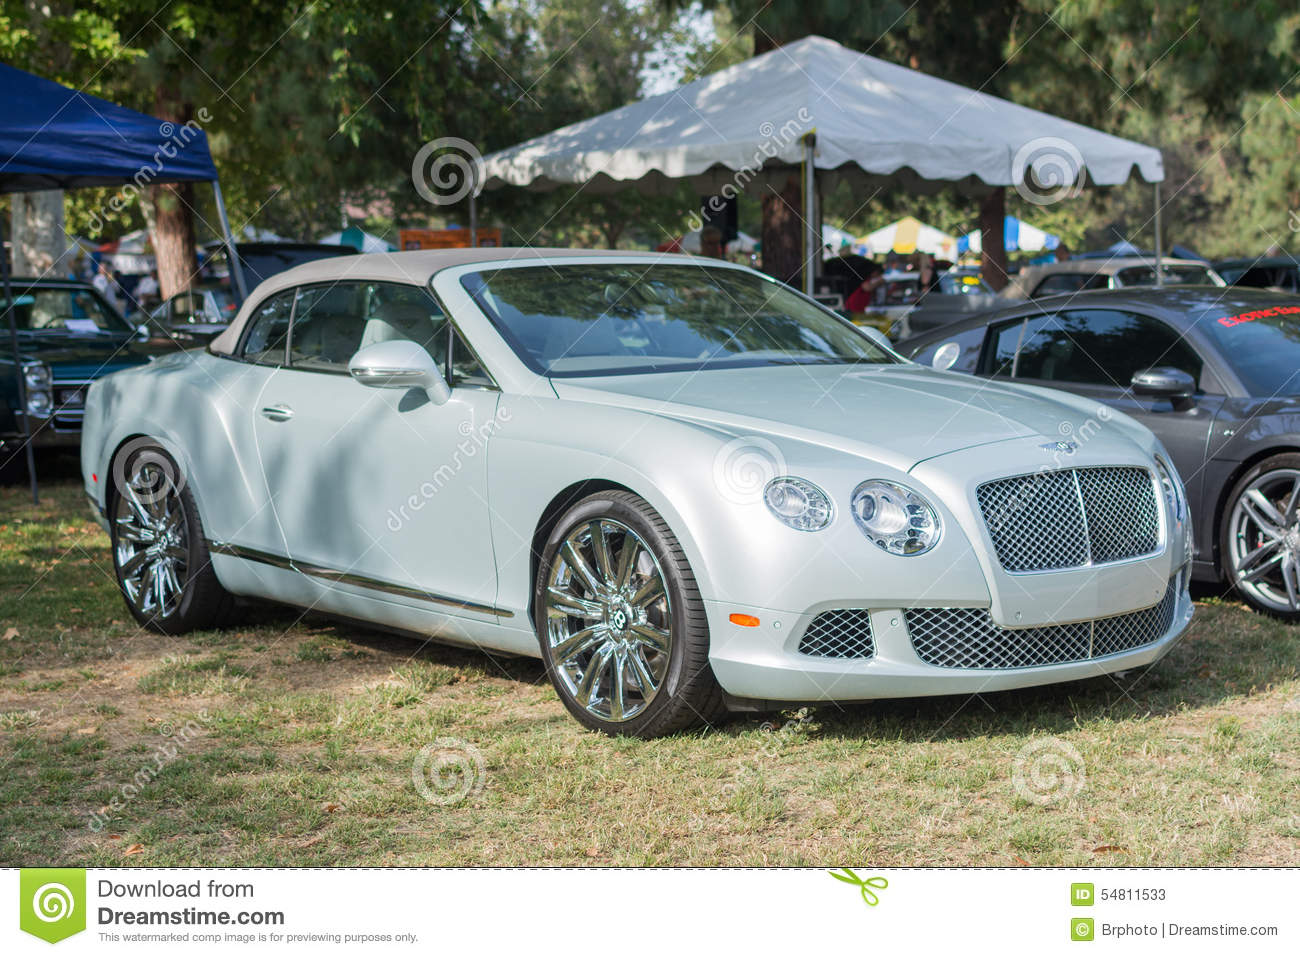 Bentley Continental GTC Car On Display Editorial Stock Photo - Image